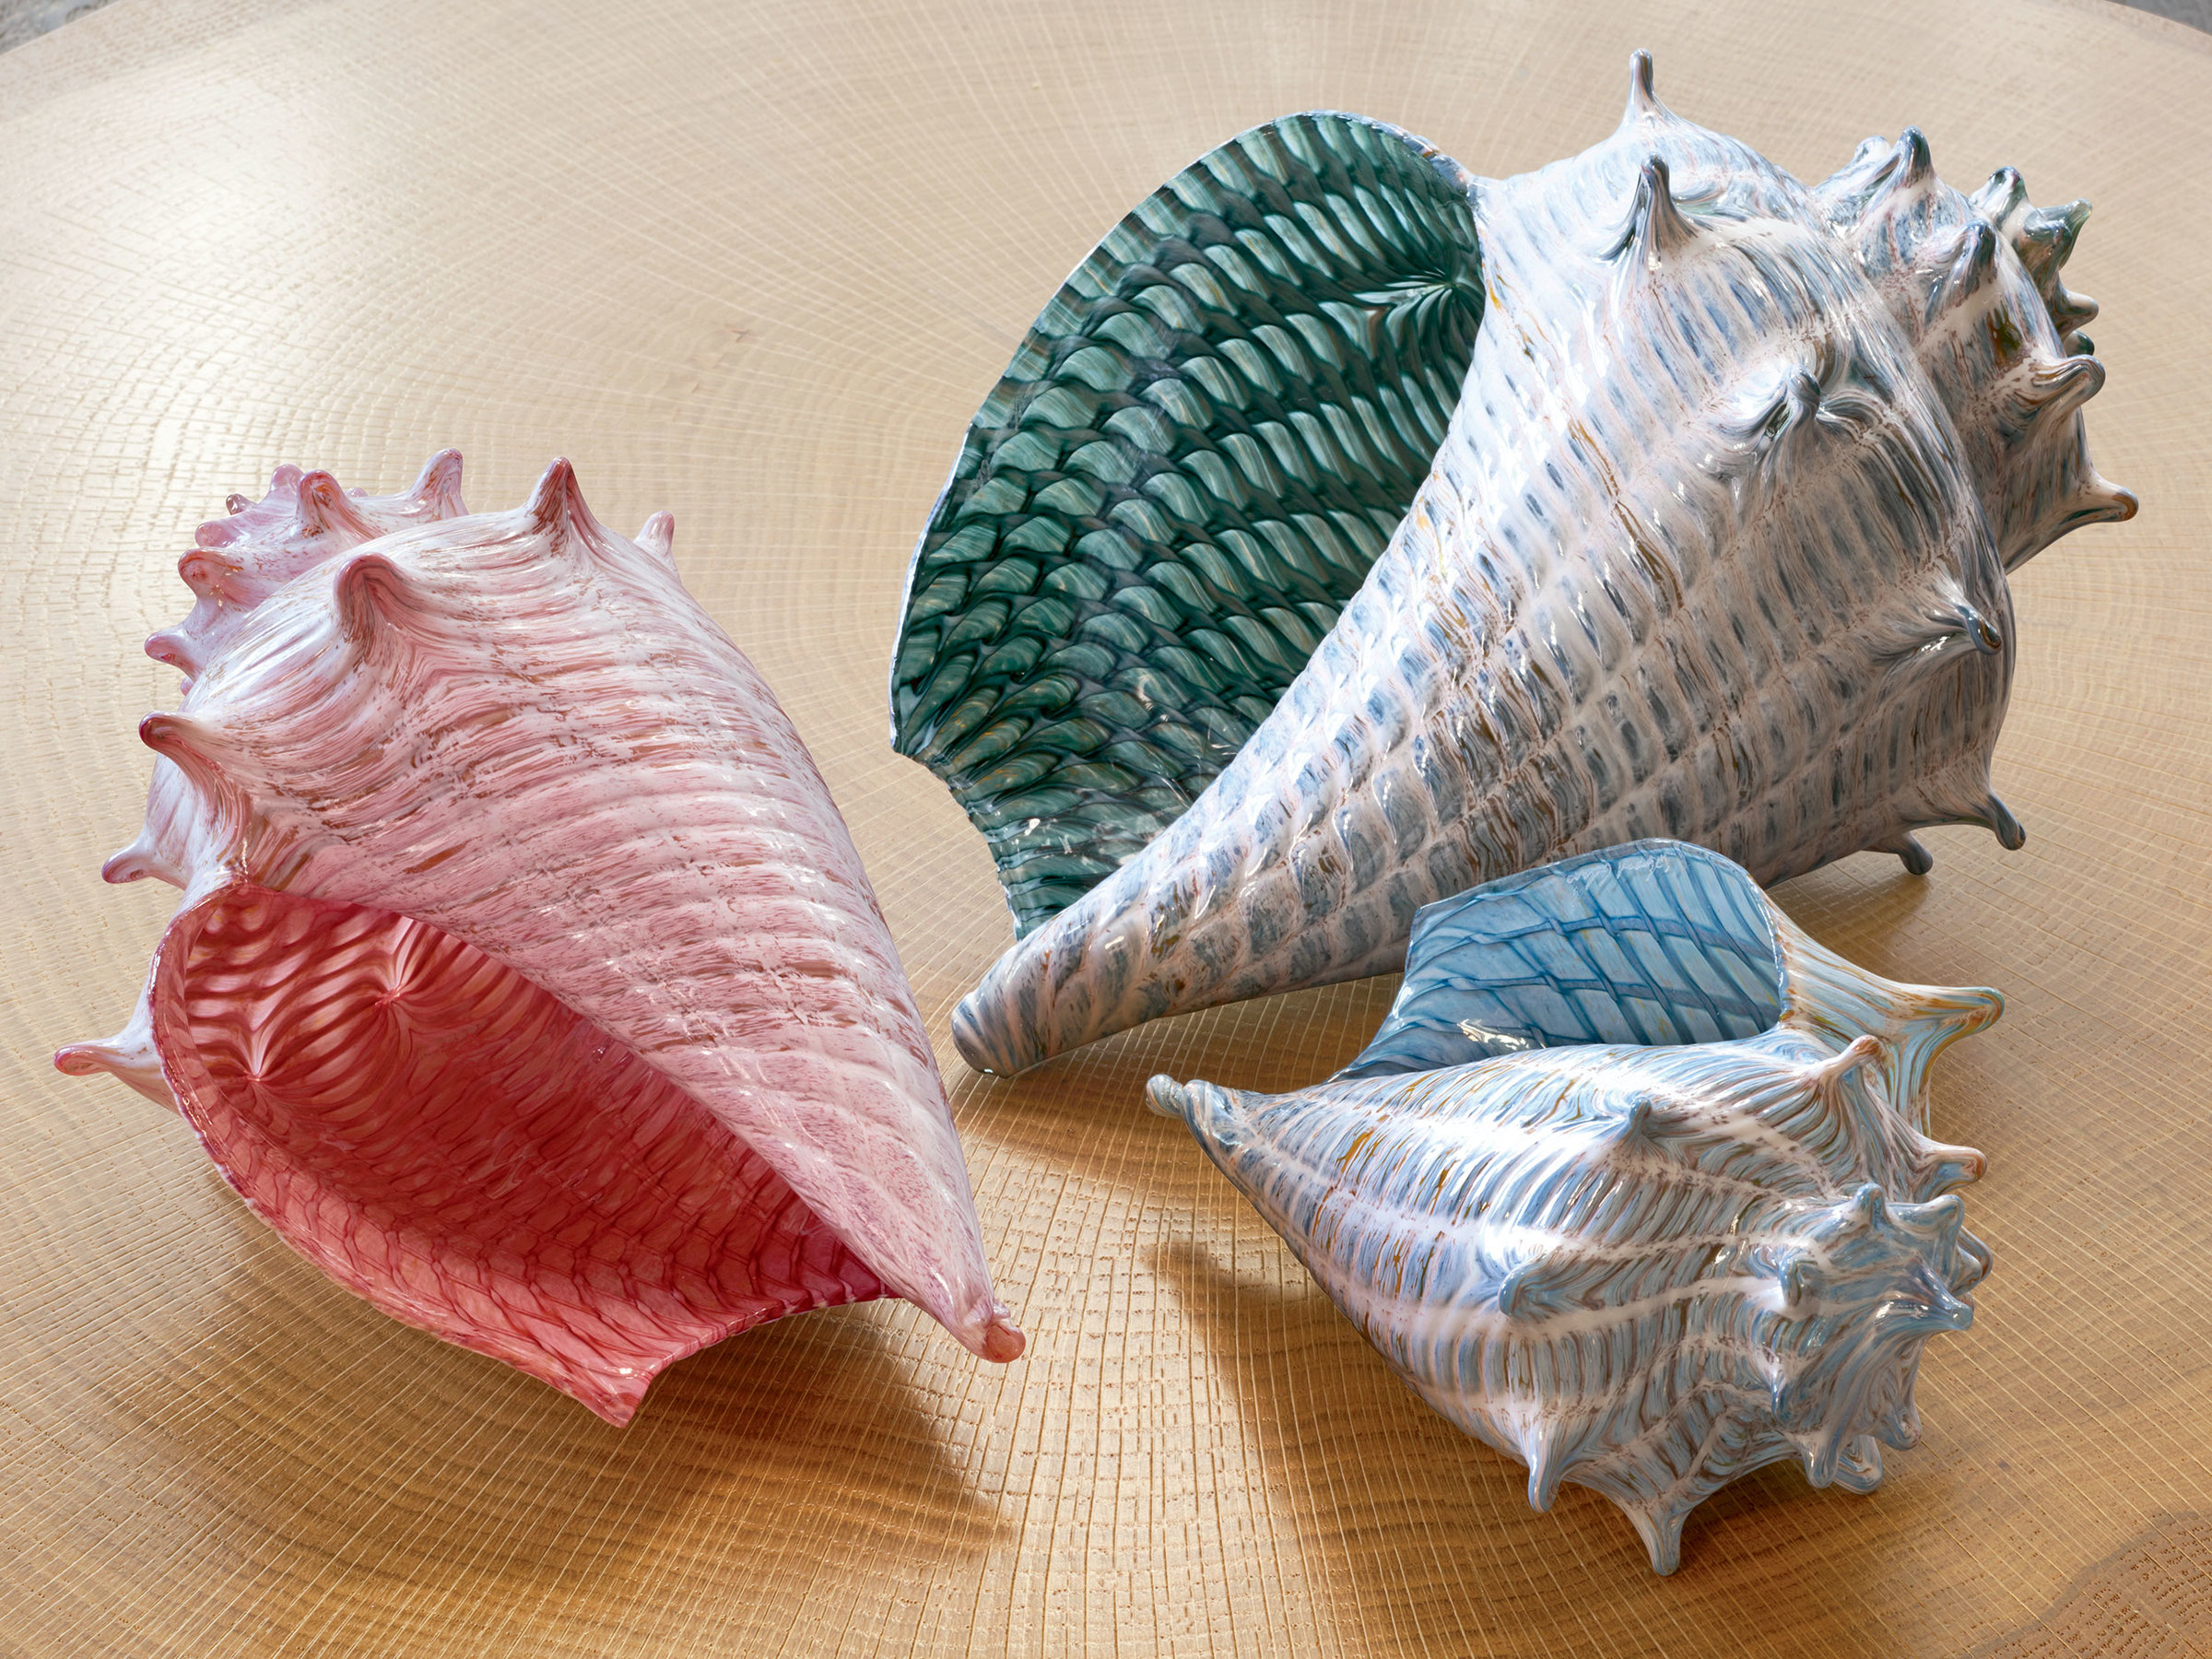 Optic Conch Shells By Treg Silkwood Art Glass Sculpture: silkwood glass